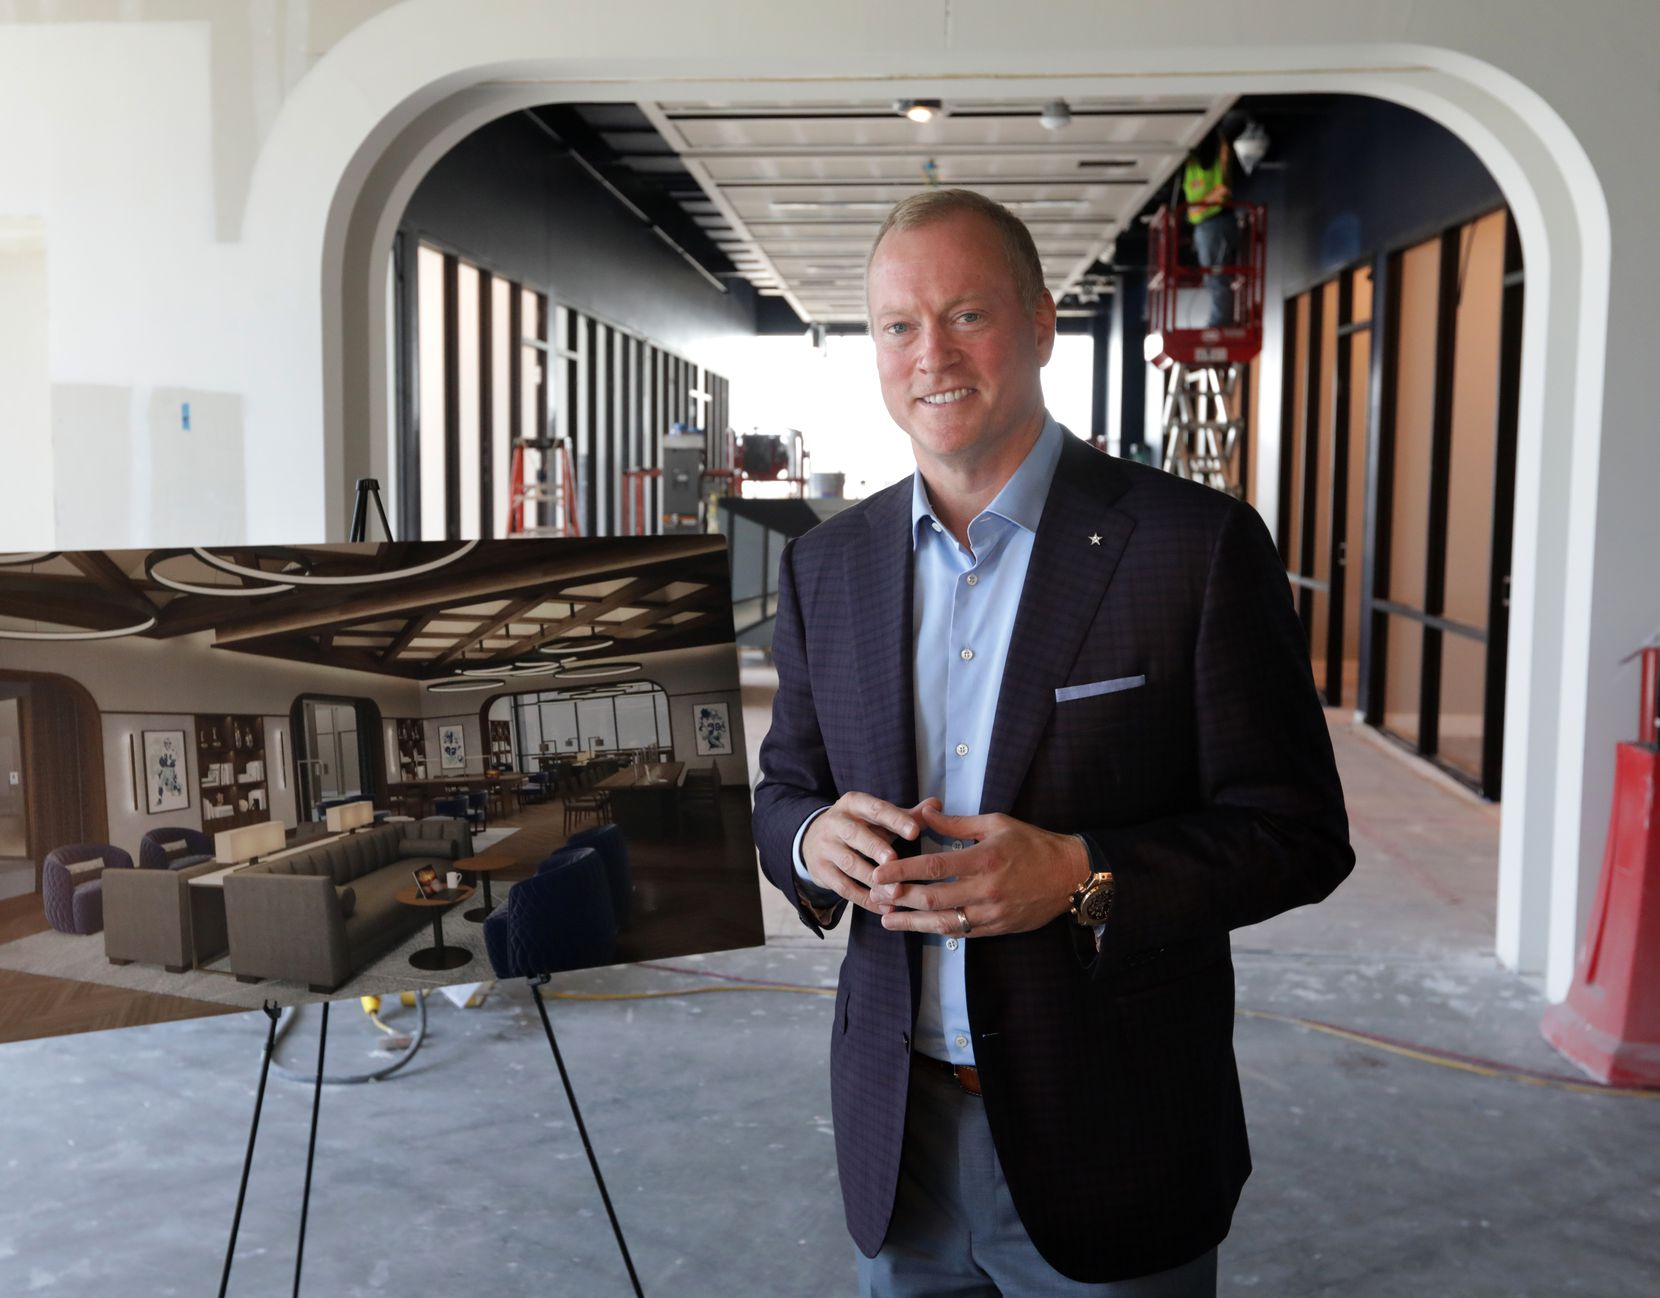 Jerry Jones, Jr. shows off the new coworking space at the Dallas Cowboys' Star development in Frisco.